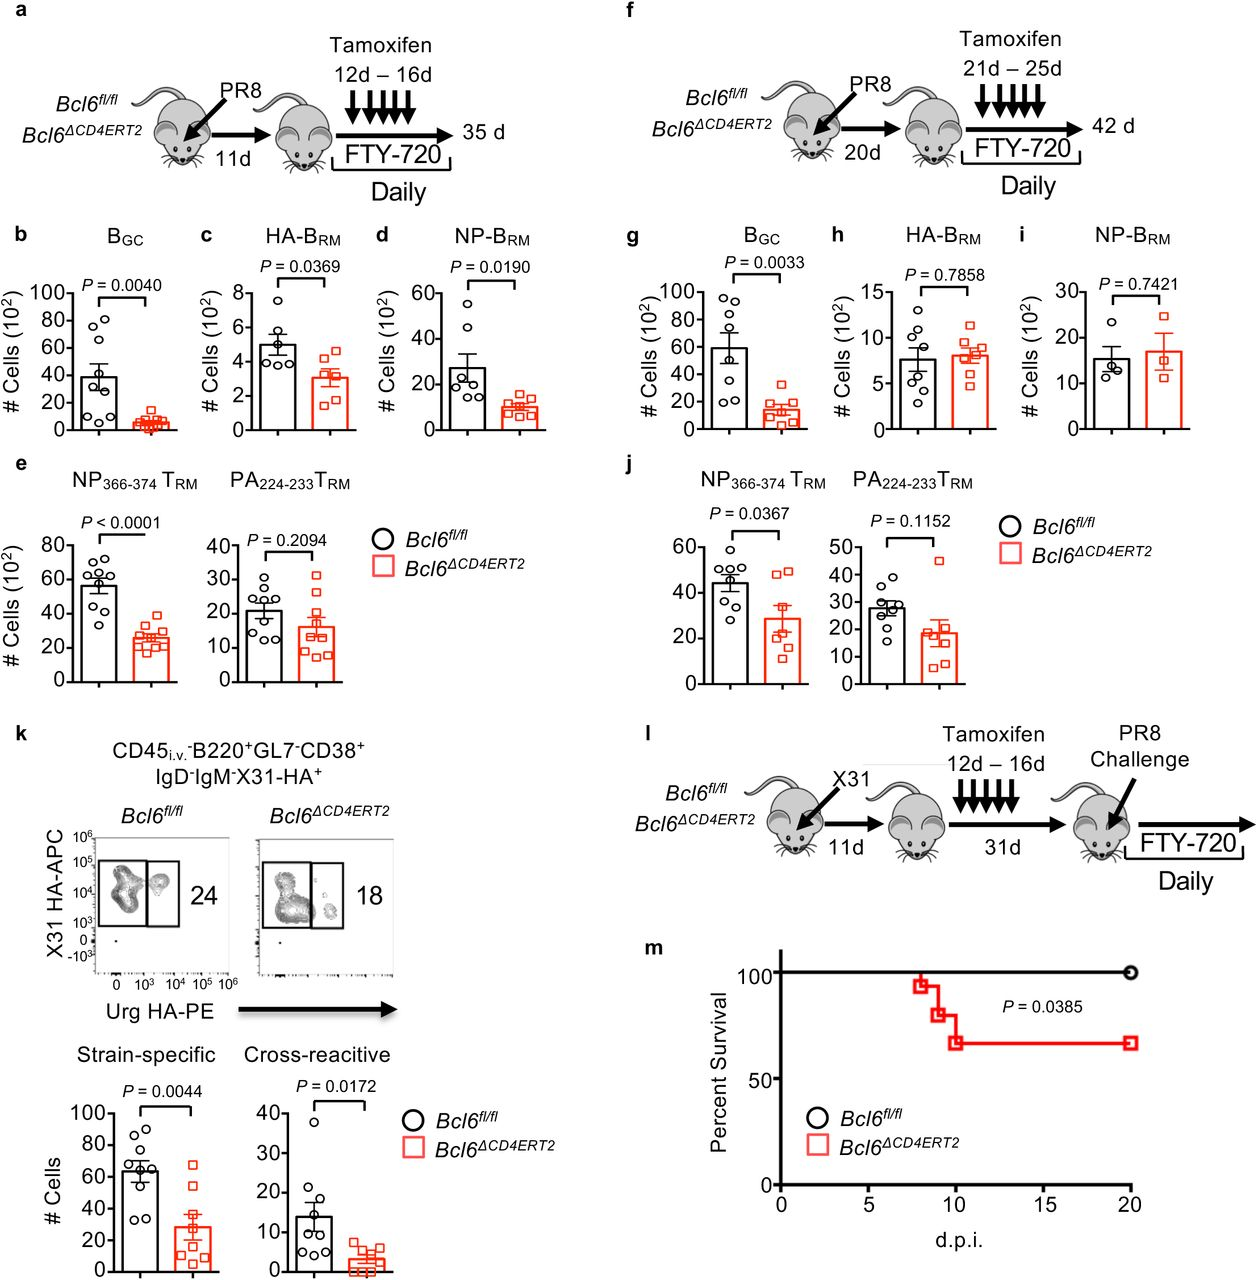 T RH cells are required for the development of lung protective CD8 + T RM and B cell immunity. a-j , Bcl6 fl/fl or Bcl6 ΔCD4ERT2 mice were infected with PR8. a-e , Tamoxifen was administrated daily from 12-16 d.p.i. in the presence of daily FTY720 administration (11-34 d.p.i.). a , Schematics of experimental design. Cell numbers of B GC ( b ), HA-specific B RM ( c ), NP-specific B RM ( d ), e , CD8 + CD69 + NP 366-374 T RM or CD8 + CD69 + PA 224-233 T RM at 35 d.p.i. f-j , Tamoxifen was administrated daily from 21-25 d.p.i. in the presence of daily FTY720 administration (20-41 d.p.i.). f , Schematics of experimental design. Cell numbers of B GC ( g ), HA-specific B RM ( h ), NP-specific B RM ( i ), j , CD8 + CD69 + NP 366-374 T RM or CD8 + CD69 + PA 224-233 T RM at 42 d.p.i. k , Bcl6 fl/fl or Bcl6 ΔCD4ERT2 mice were infected with X31 strain (H3N2) of influenza. Tamoxifen was administrated daily from 12-16 d.p.i. in the presence of daily FTY720 administration (11-34 d.p.i.). Representative dot plot (top) and cell numbers (bottom) of X31 strain-specific B RM or cross-reactive HA-specific B RM (to H3N2 A/Uruguay/716/07 strain) at 35 d.p.i. l-m , Bcl6 fl/fl (n = 11) or Bcl6 ΔCD4ERT2 (n = 15) mice were infected with X31 and administered with tamoxifen from 12 to 16 d.p.i. Mice were re-challenged with PR8 at 42 d.p.i. in the presence of FTY720 (starting from 41d). l , Schematics of experimental design. m , Host mortality following PR8 challenge was monitored. In a-h and j-k , all data were pooled from two ( c, d, k, g, h and j ) or three ( b and e ) independent experiments (2-5 mice per group). In a-k, P values were calculated by unpaired two-tailed Student's t-test. P value of survival study in m was calculated by Logrank test.